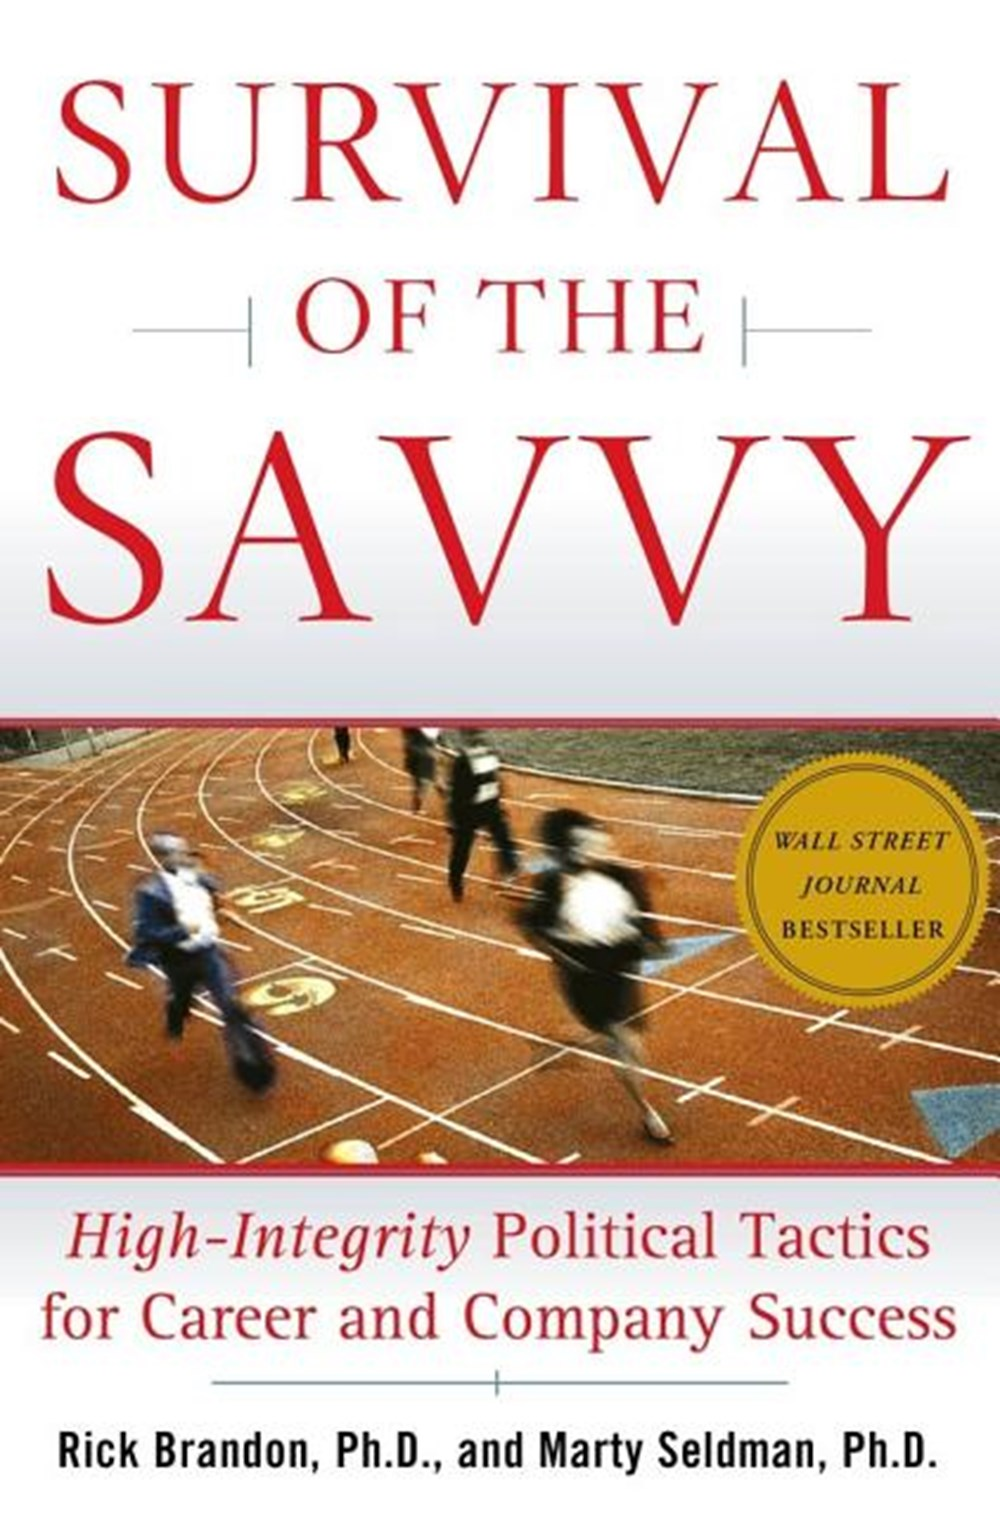 Survival of the Savvy High-Integrity Political Tactics for Career and Company Success